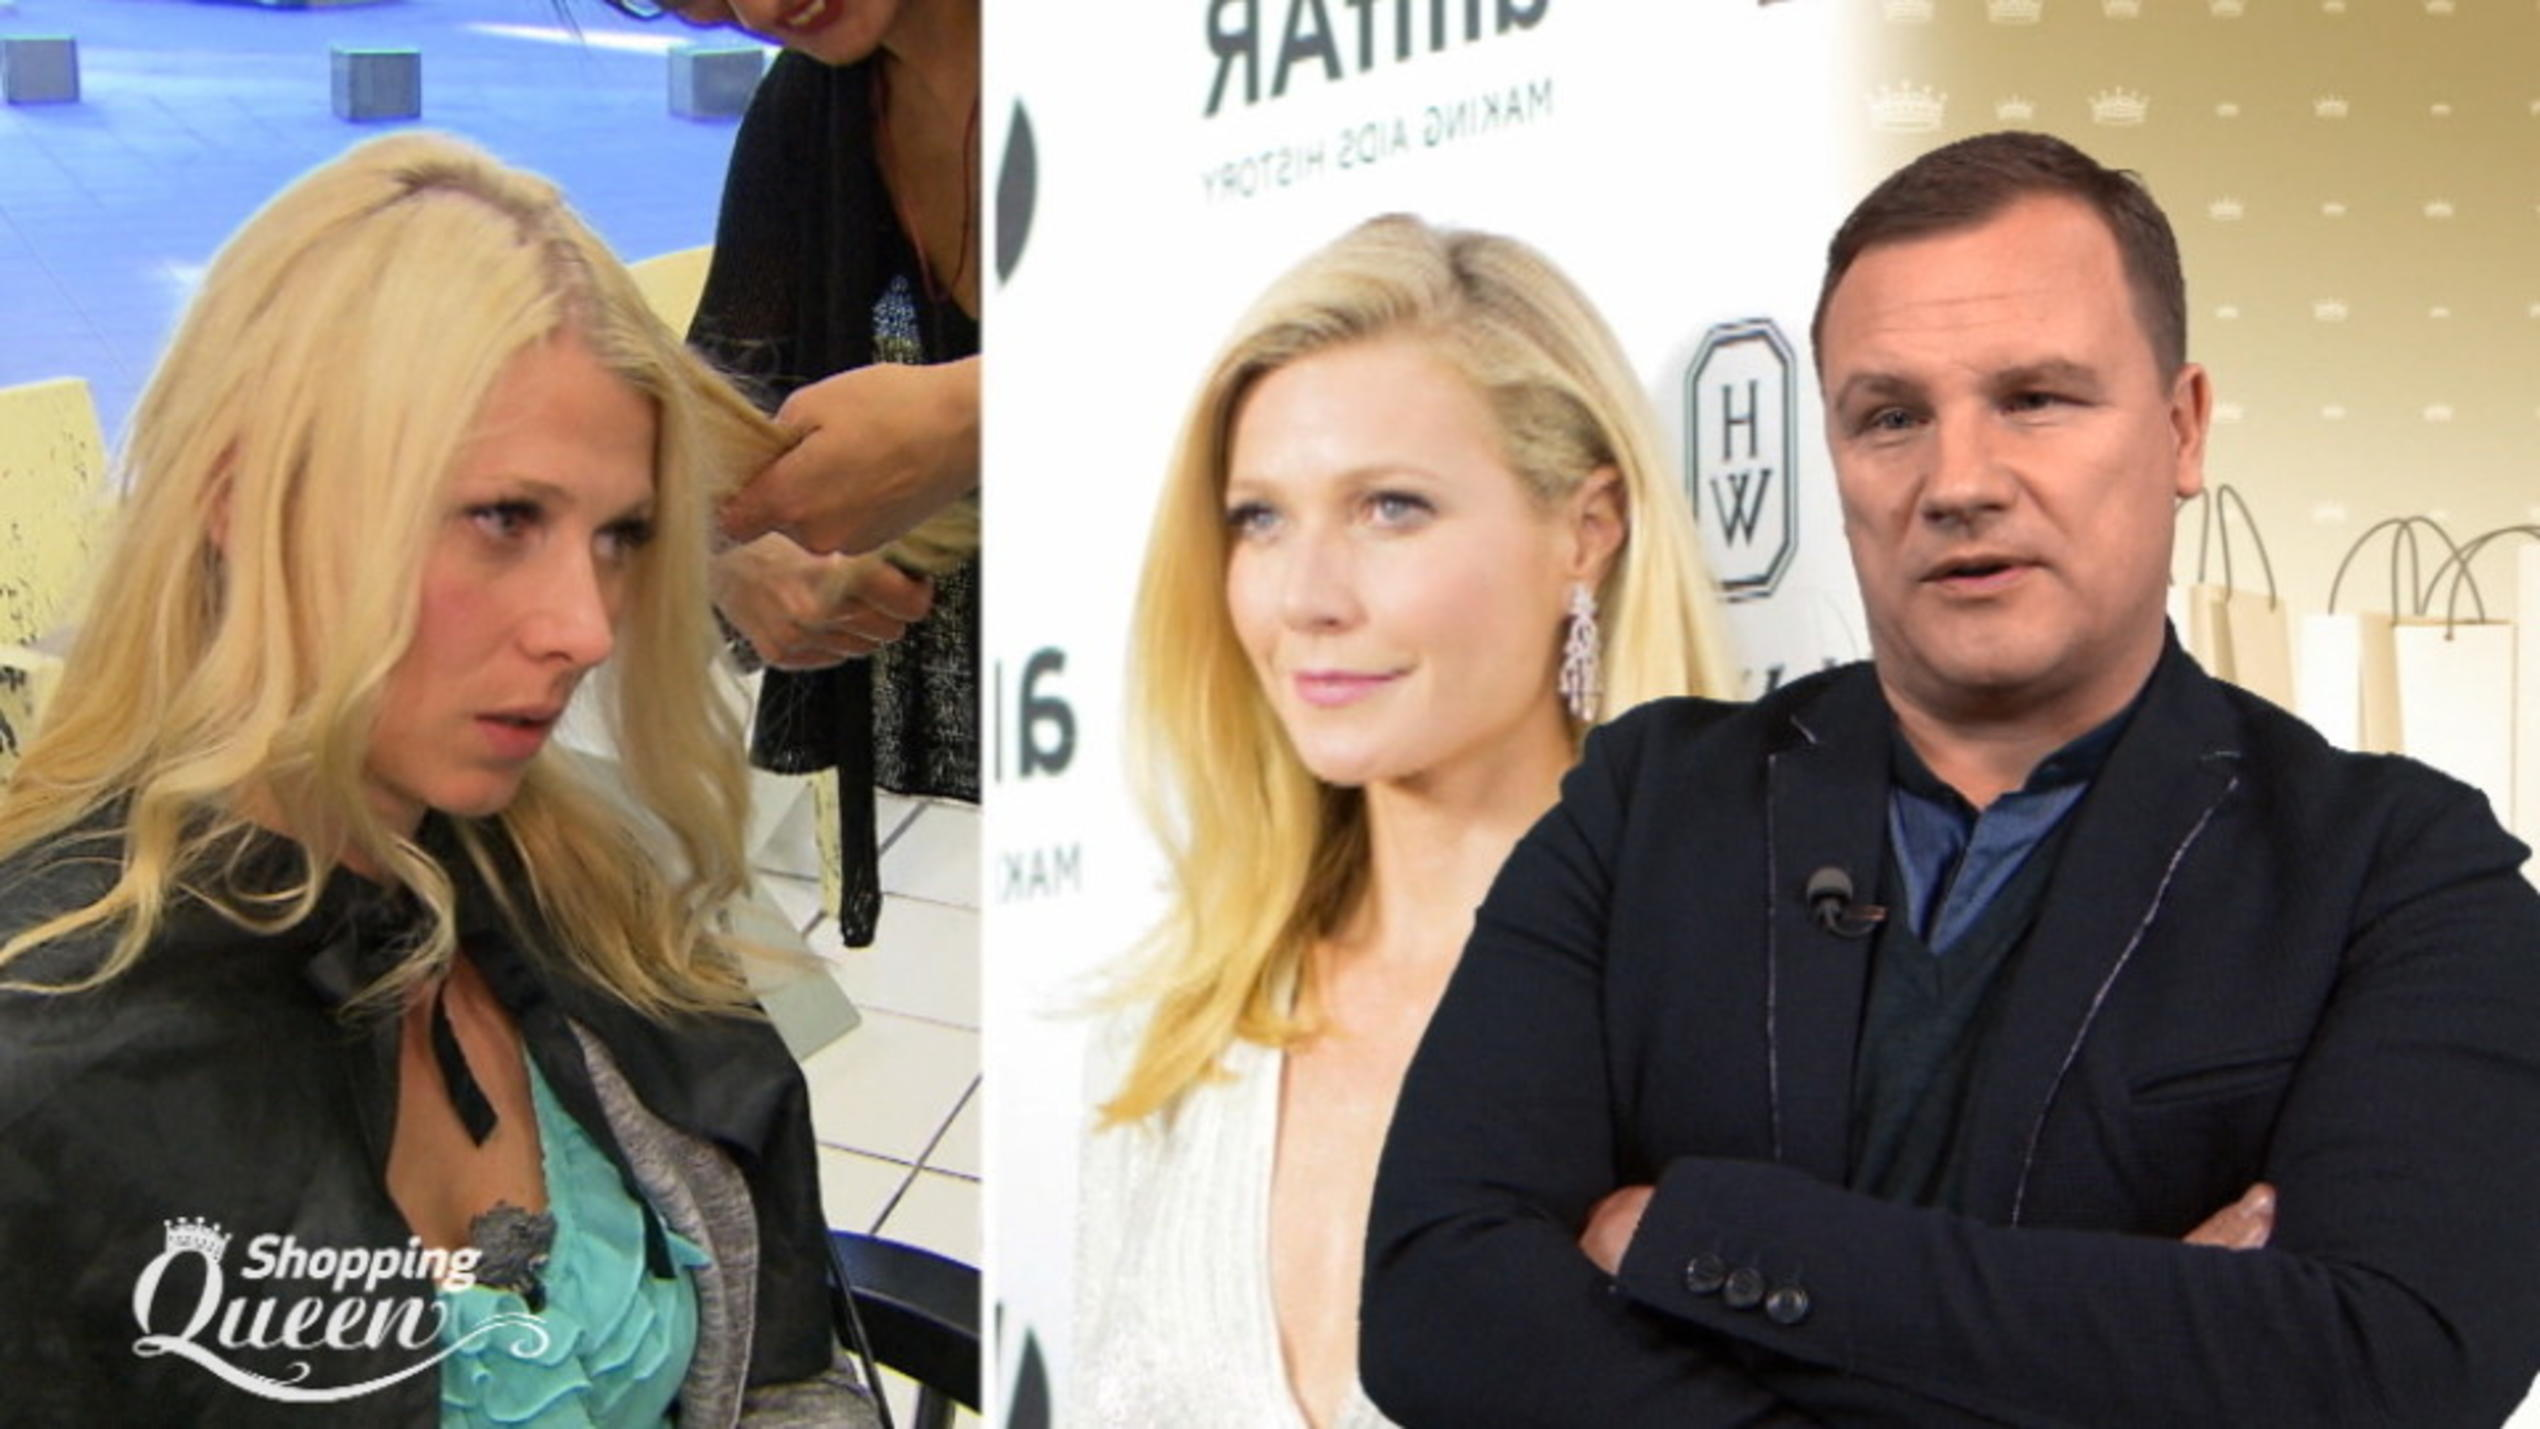 Shopping Queen: Kandidatin Imke verwandelt sich in Gwyneth Paltrow